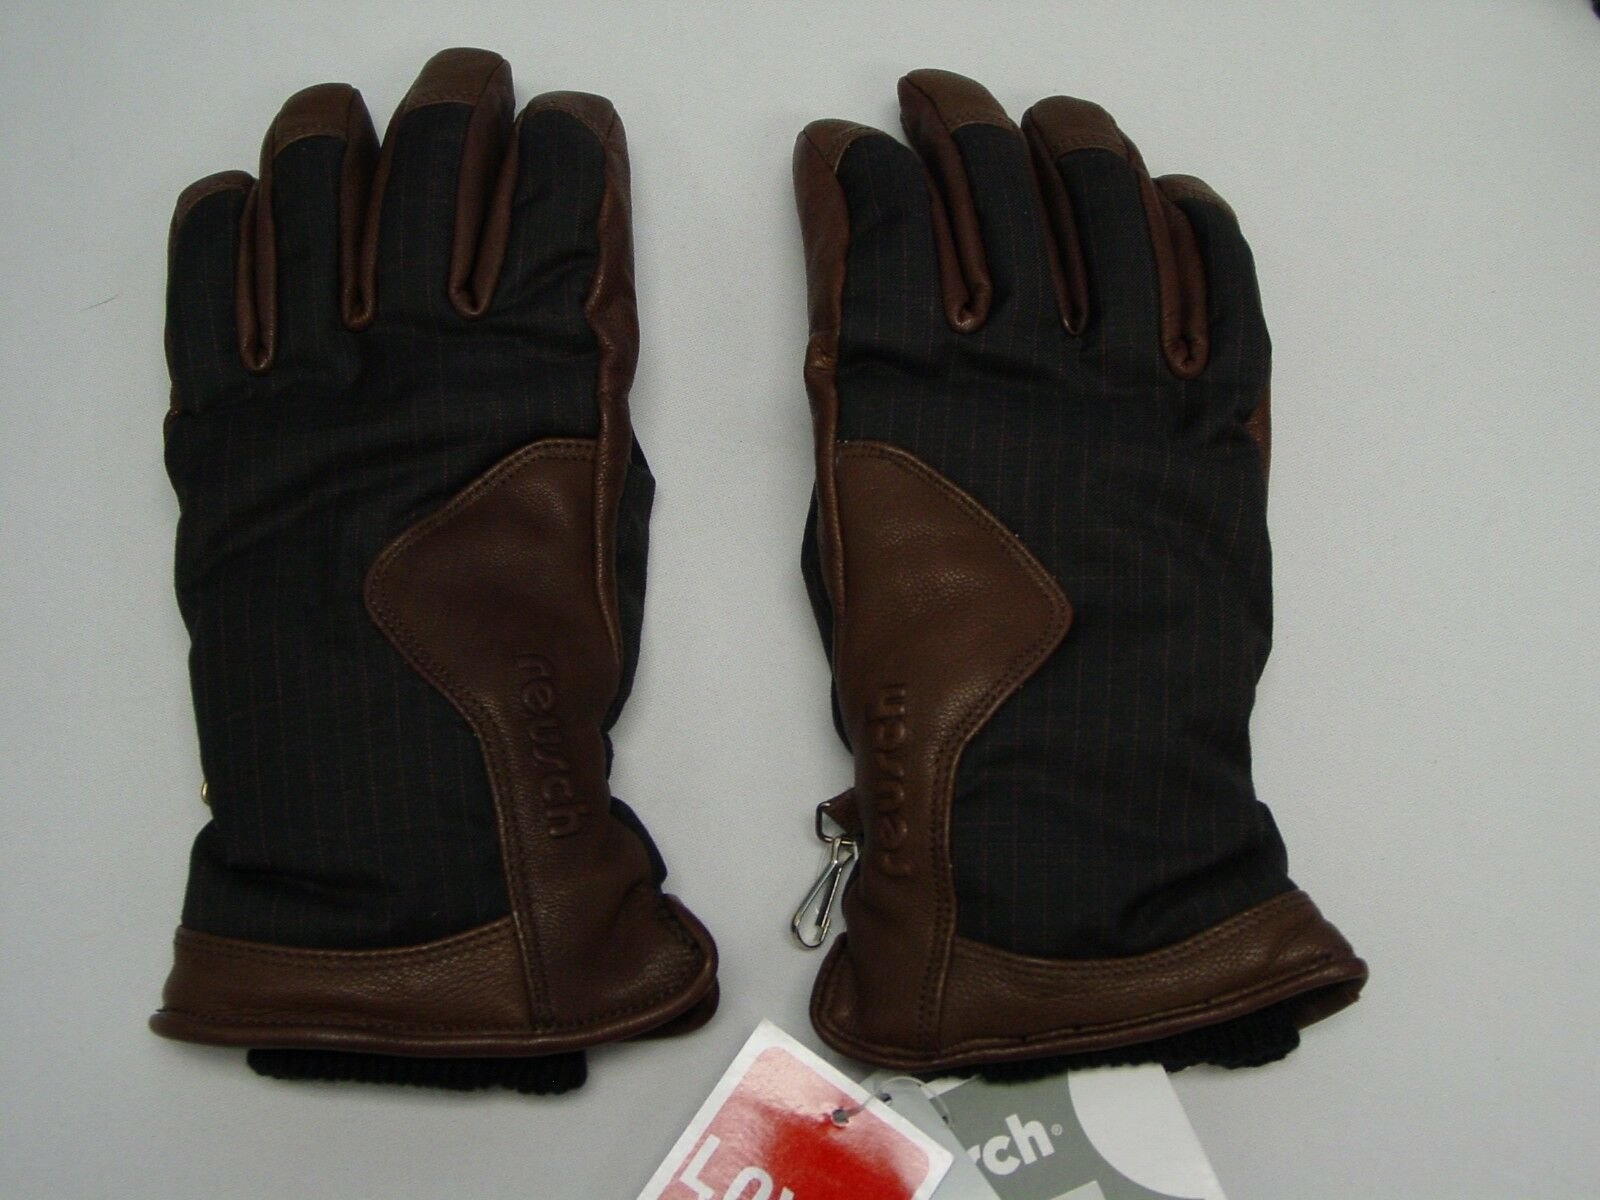 New Reusch Madison  Ski G s Womens LEATHER PALMS Size Small (7)  discount sales